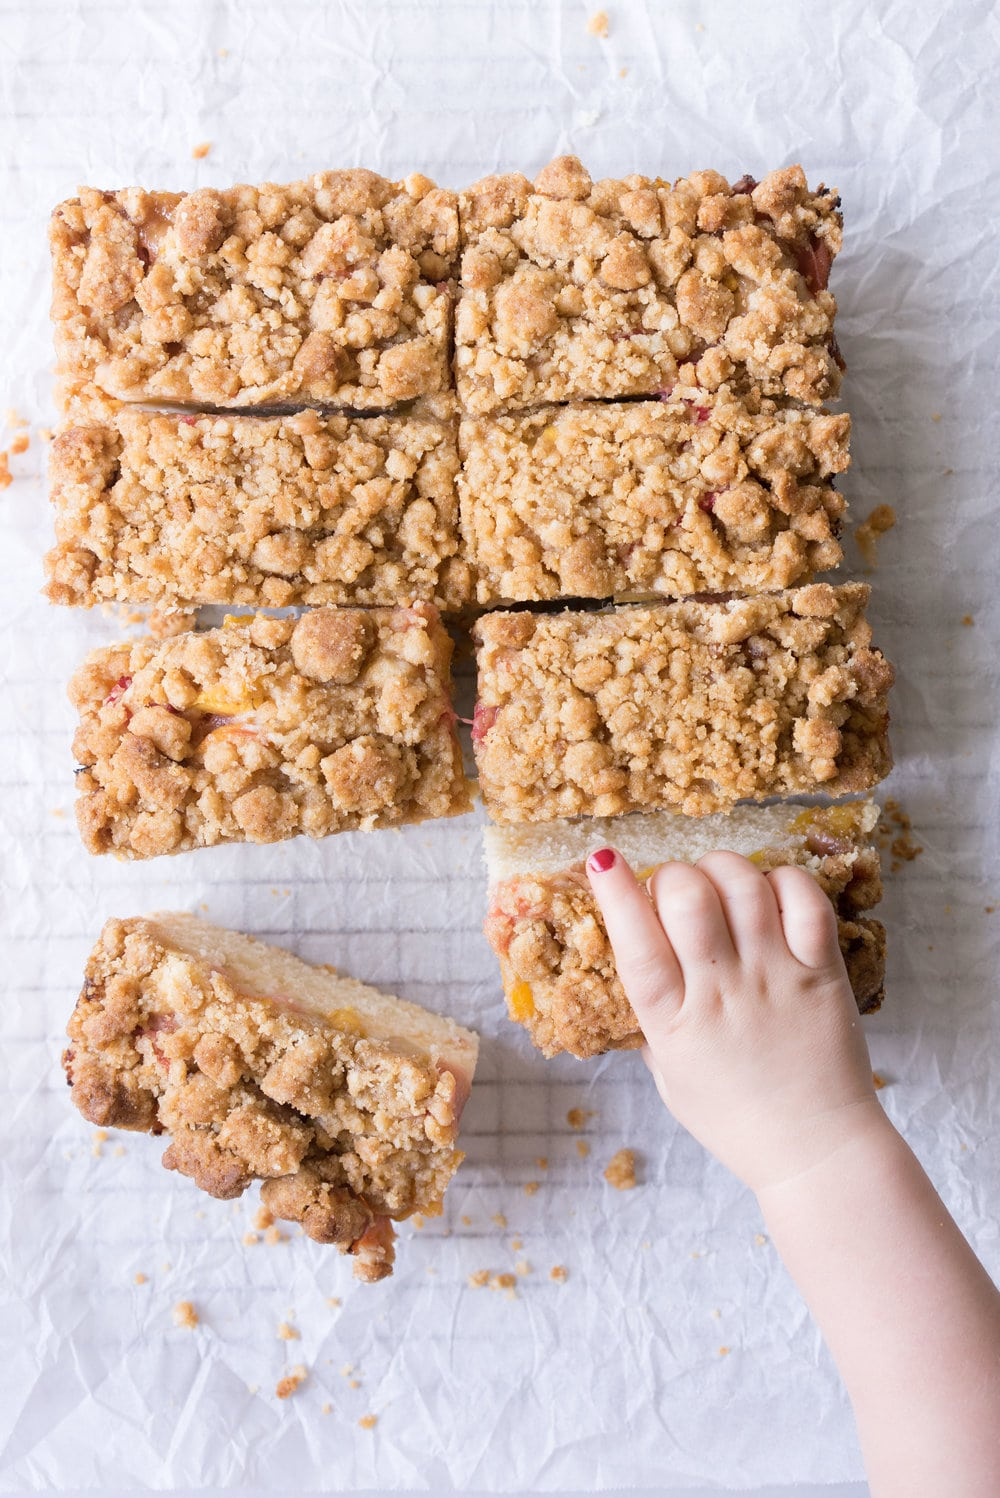 Peach and rhubarb crumb cake with brown butter streusel. This soft vanilla bean cake is covered with chopped fruit, and finished with a toasty, crunchy brown butter streusel.